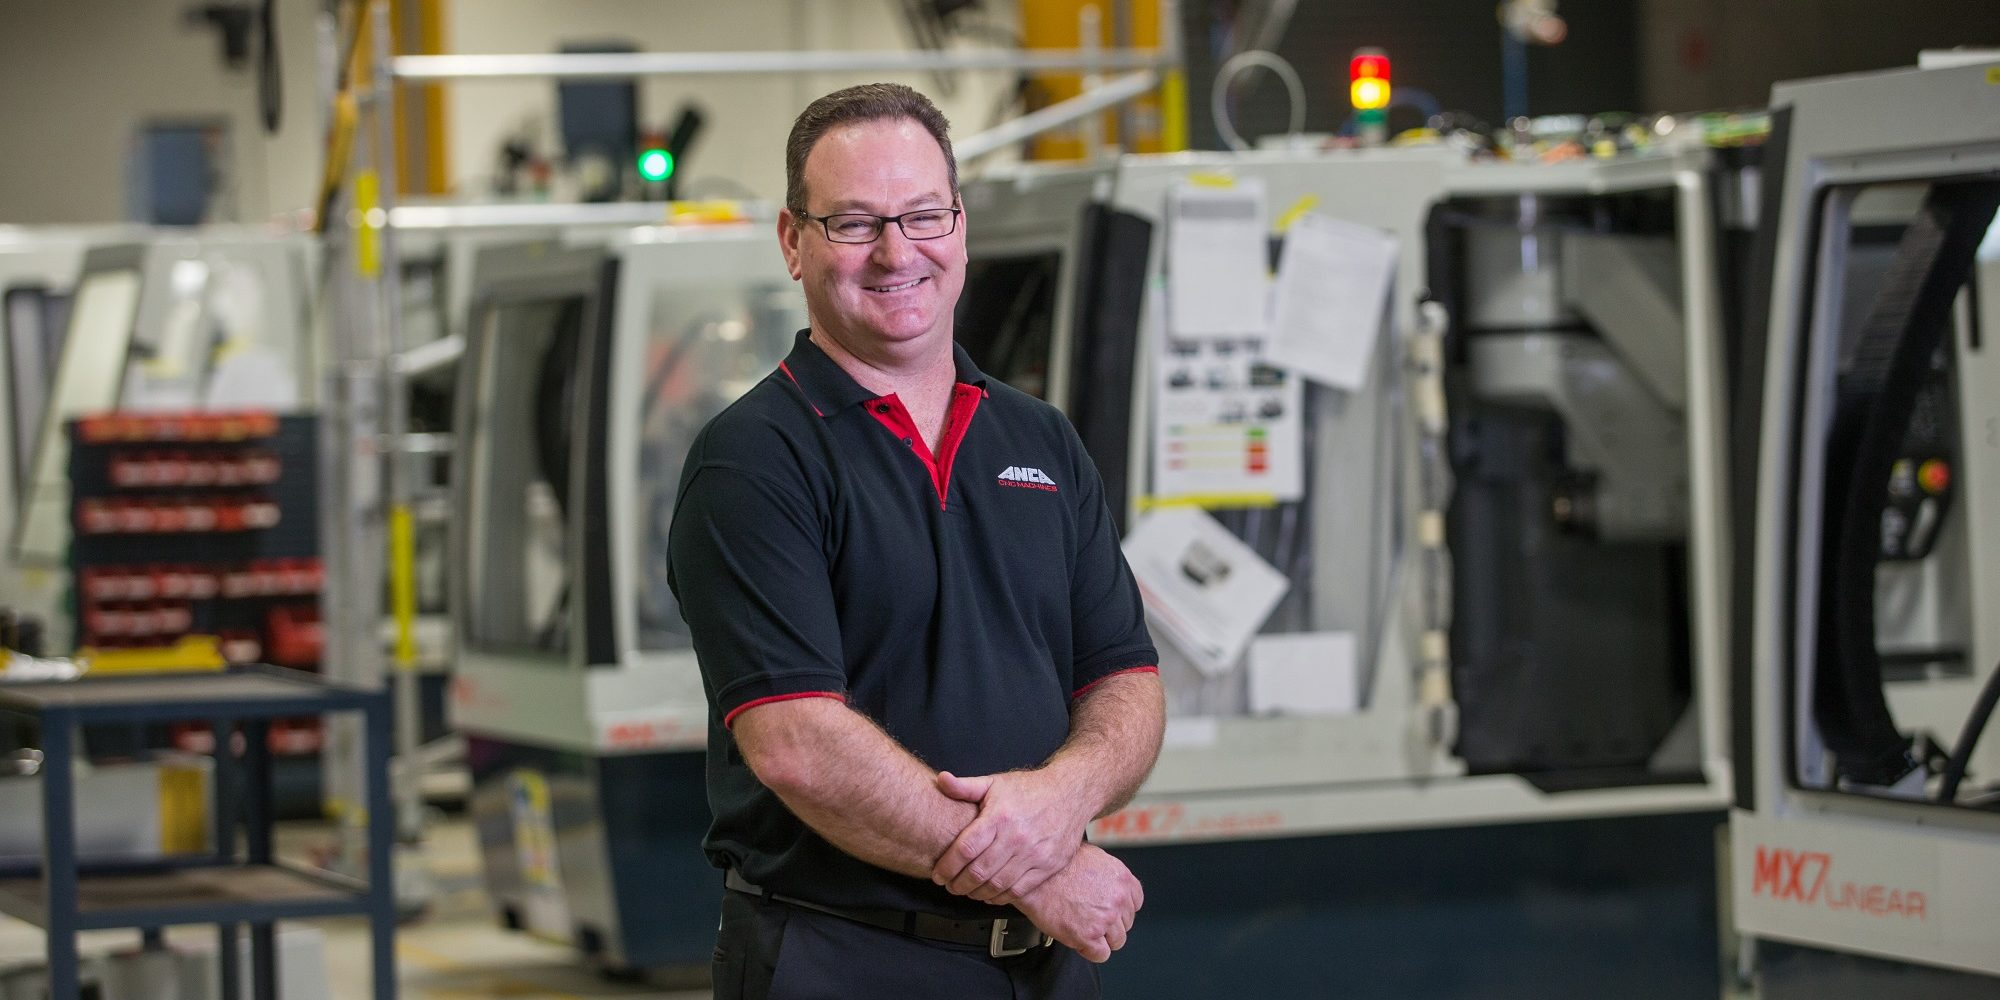 Mark Patman, Manufacturing Operations Manager, ANCA CNC